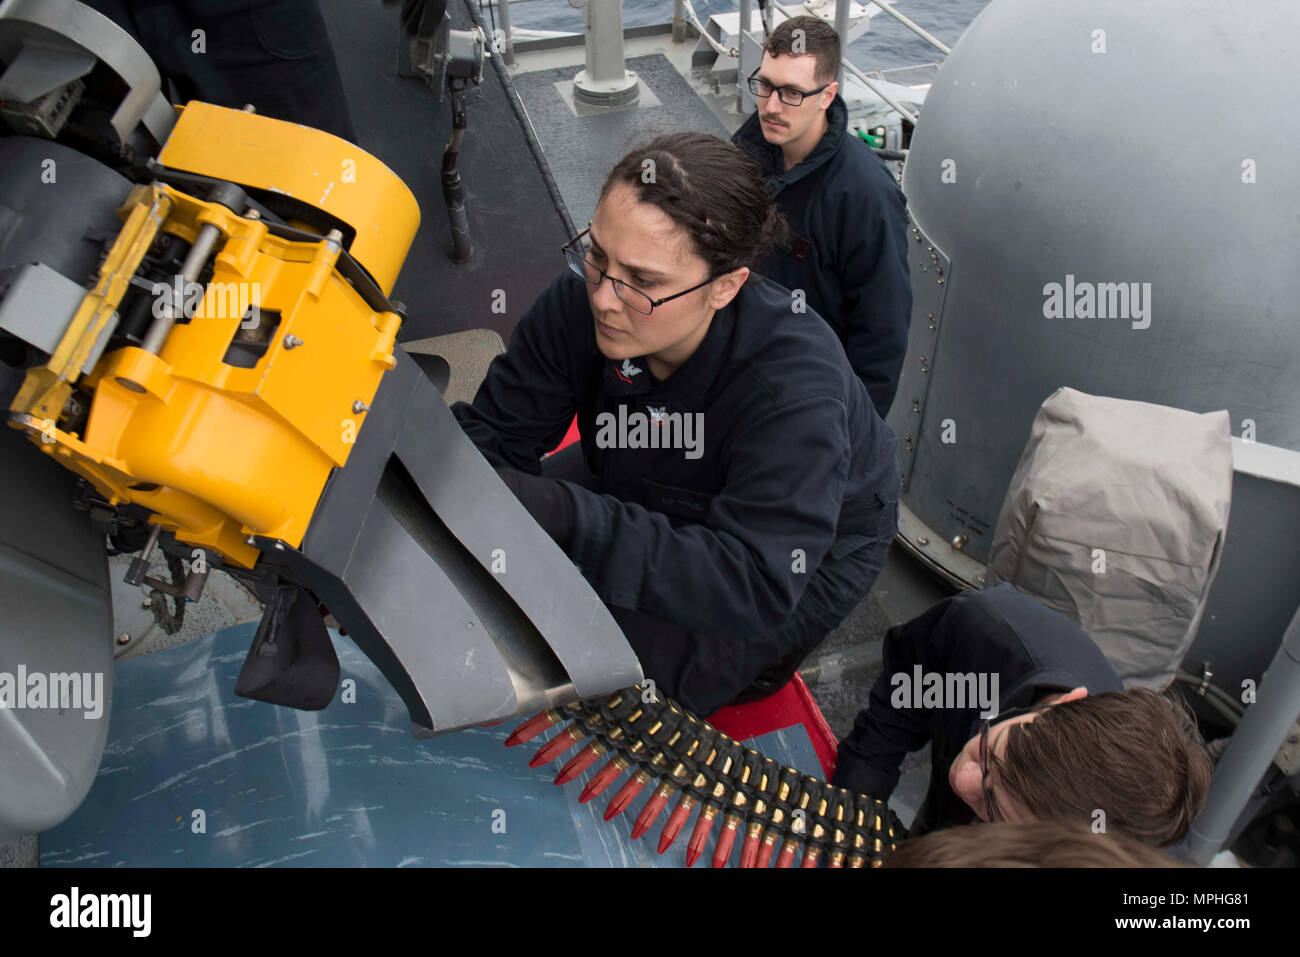 170314-N-NB544-145  PHILIPPINE SEA (March 14, 2017) Fire Controlman 3rd Class Alexandria Ricalde loads Mark 244 20 mm rounds into a Close-In Weapons System during an ammo upload exercise aboard the amphibious assault ship USS Bonhomme Richard (LHD 6). The ship and its expeditionary strike group are on a routine patrol operating in the Indo-Asia-Pacific region to enhance warfighting readiness and posture forward as a ready-response force for any type of contingency. (U.S. Navy photo by Mass Communication Specialist 2nd Class Kyle Carlstrom/Released) - Stock Image